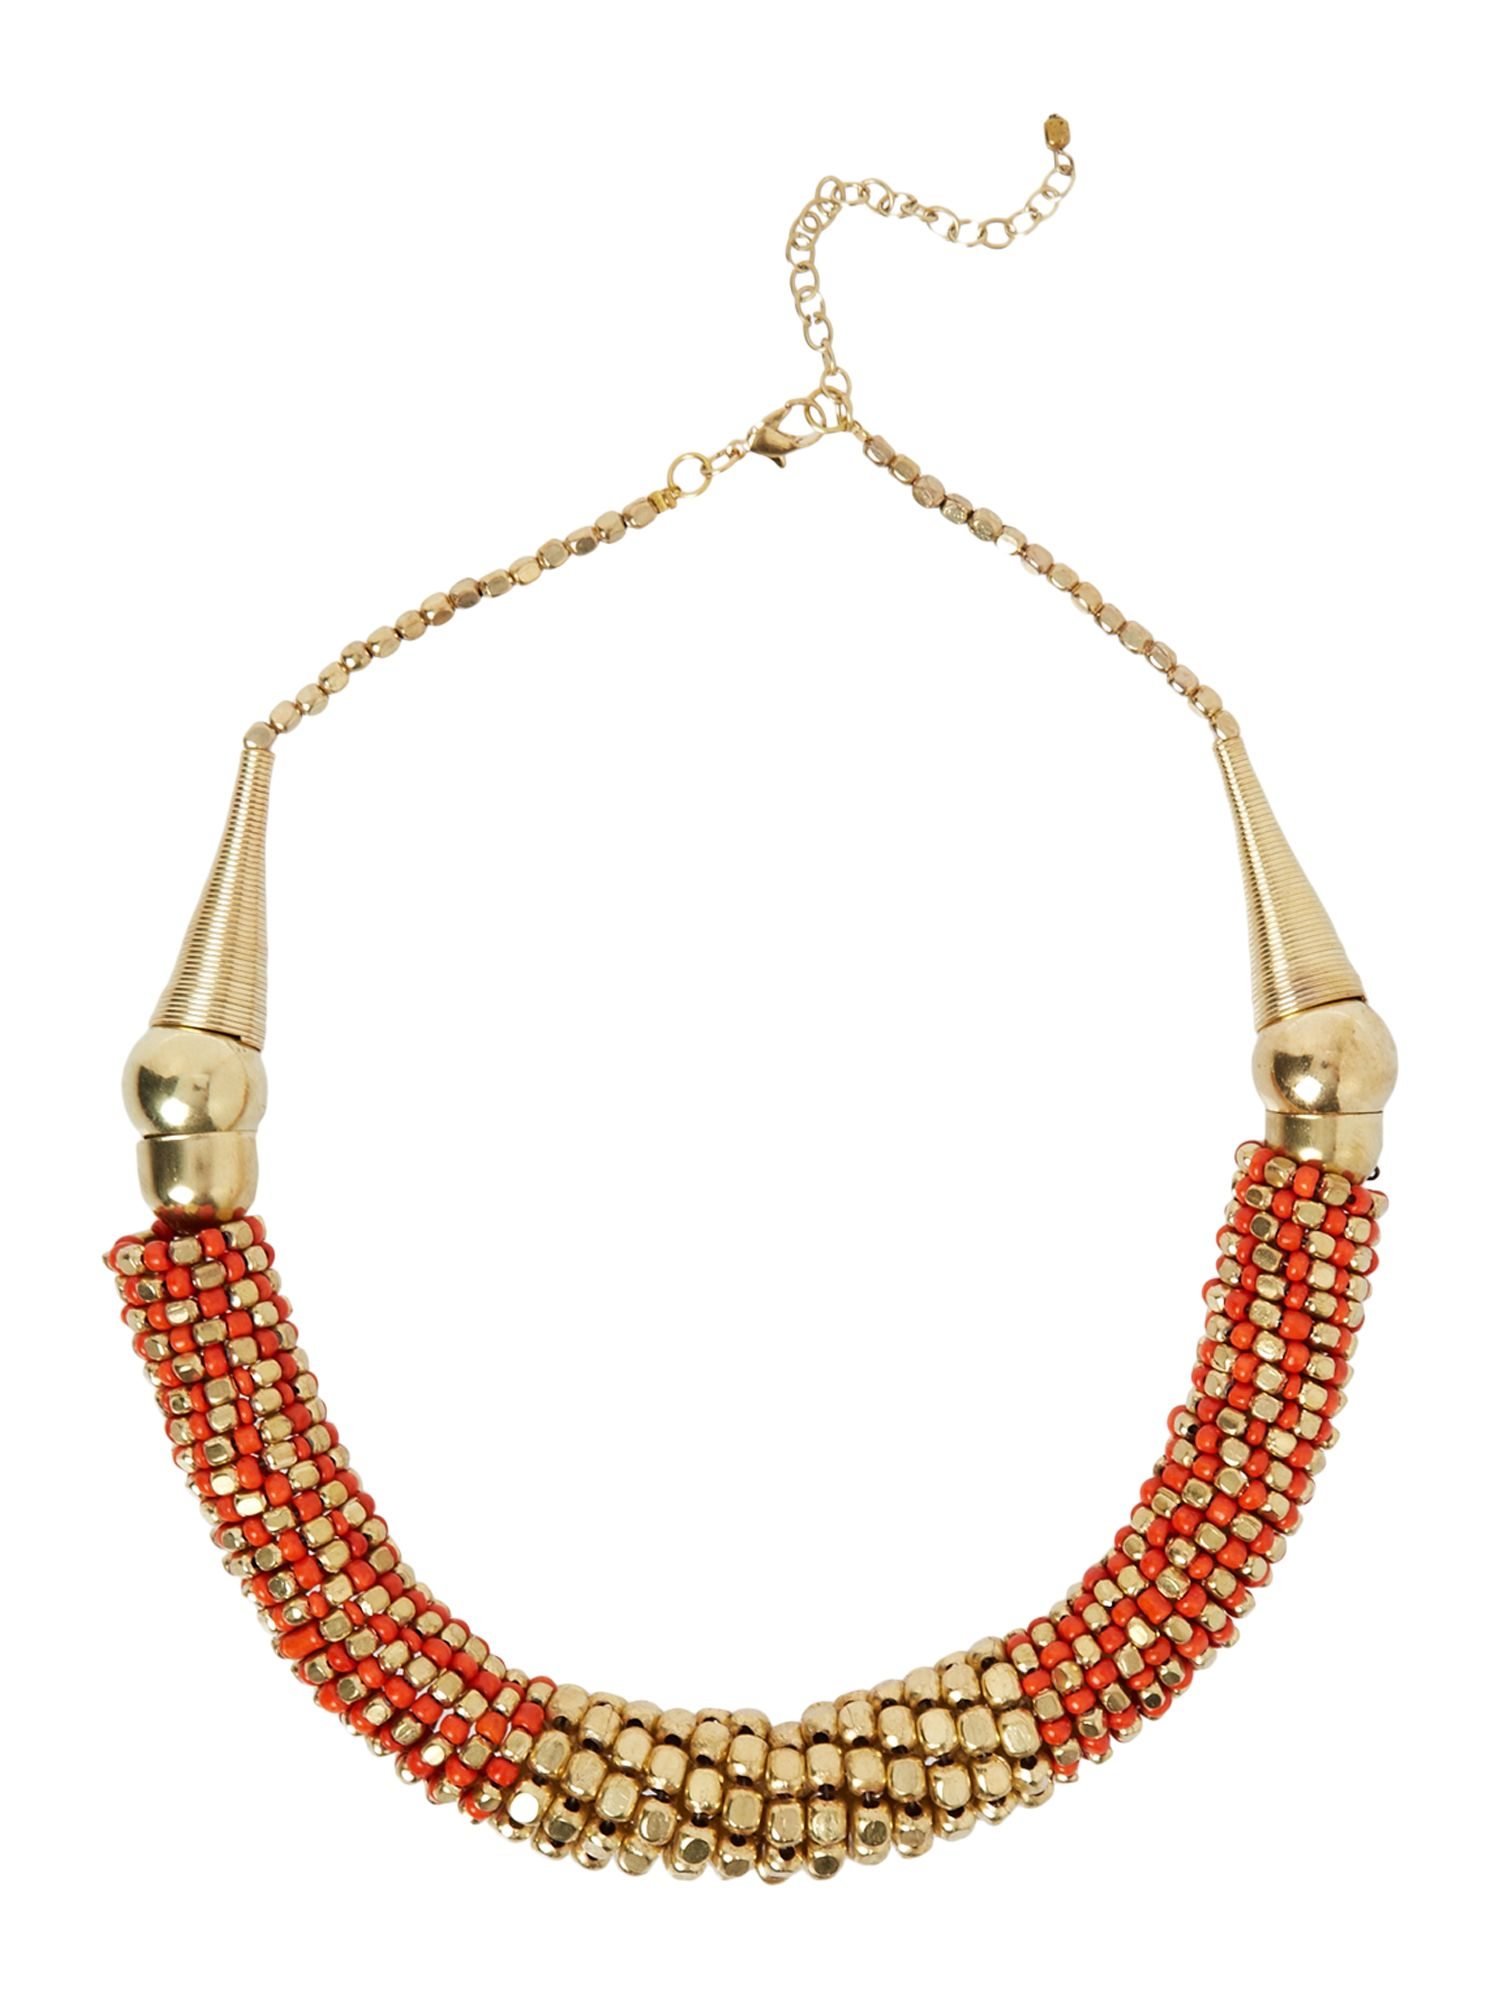 Gold midas necklace